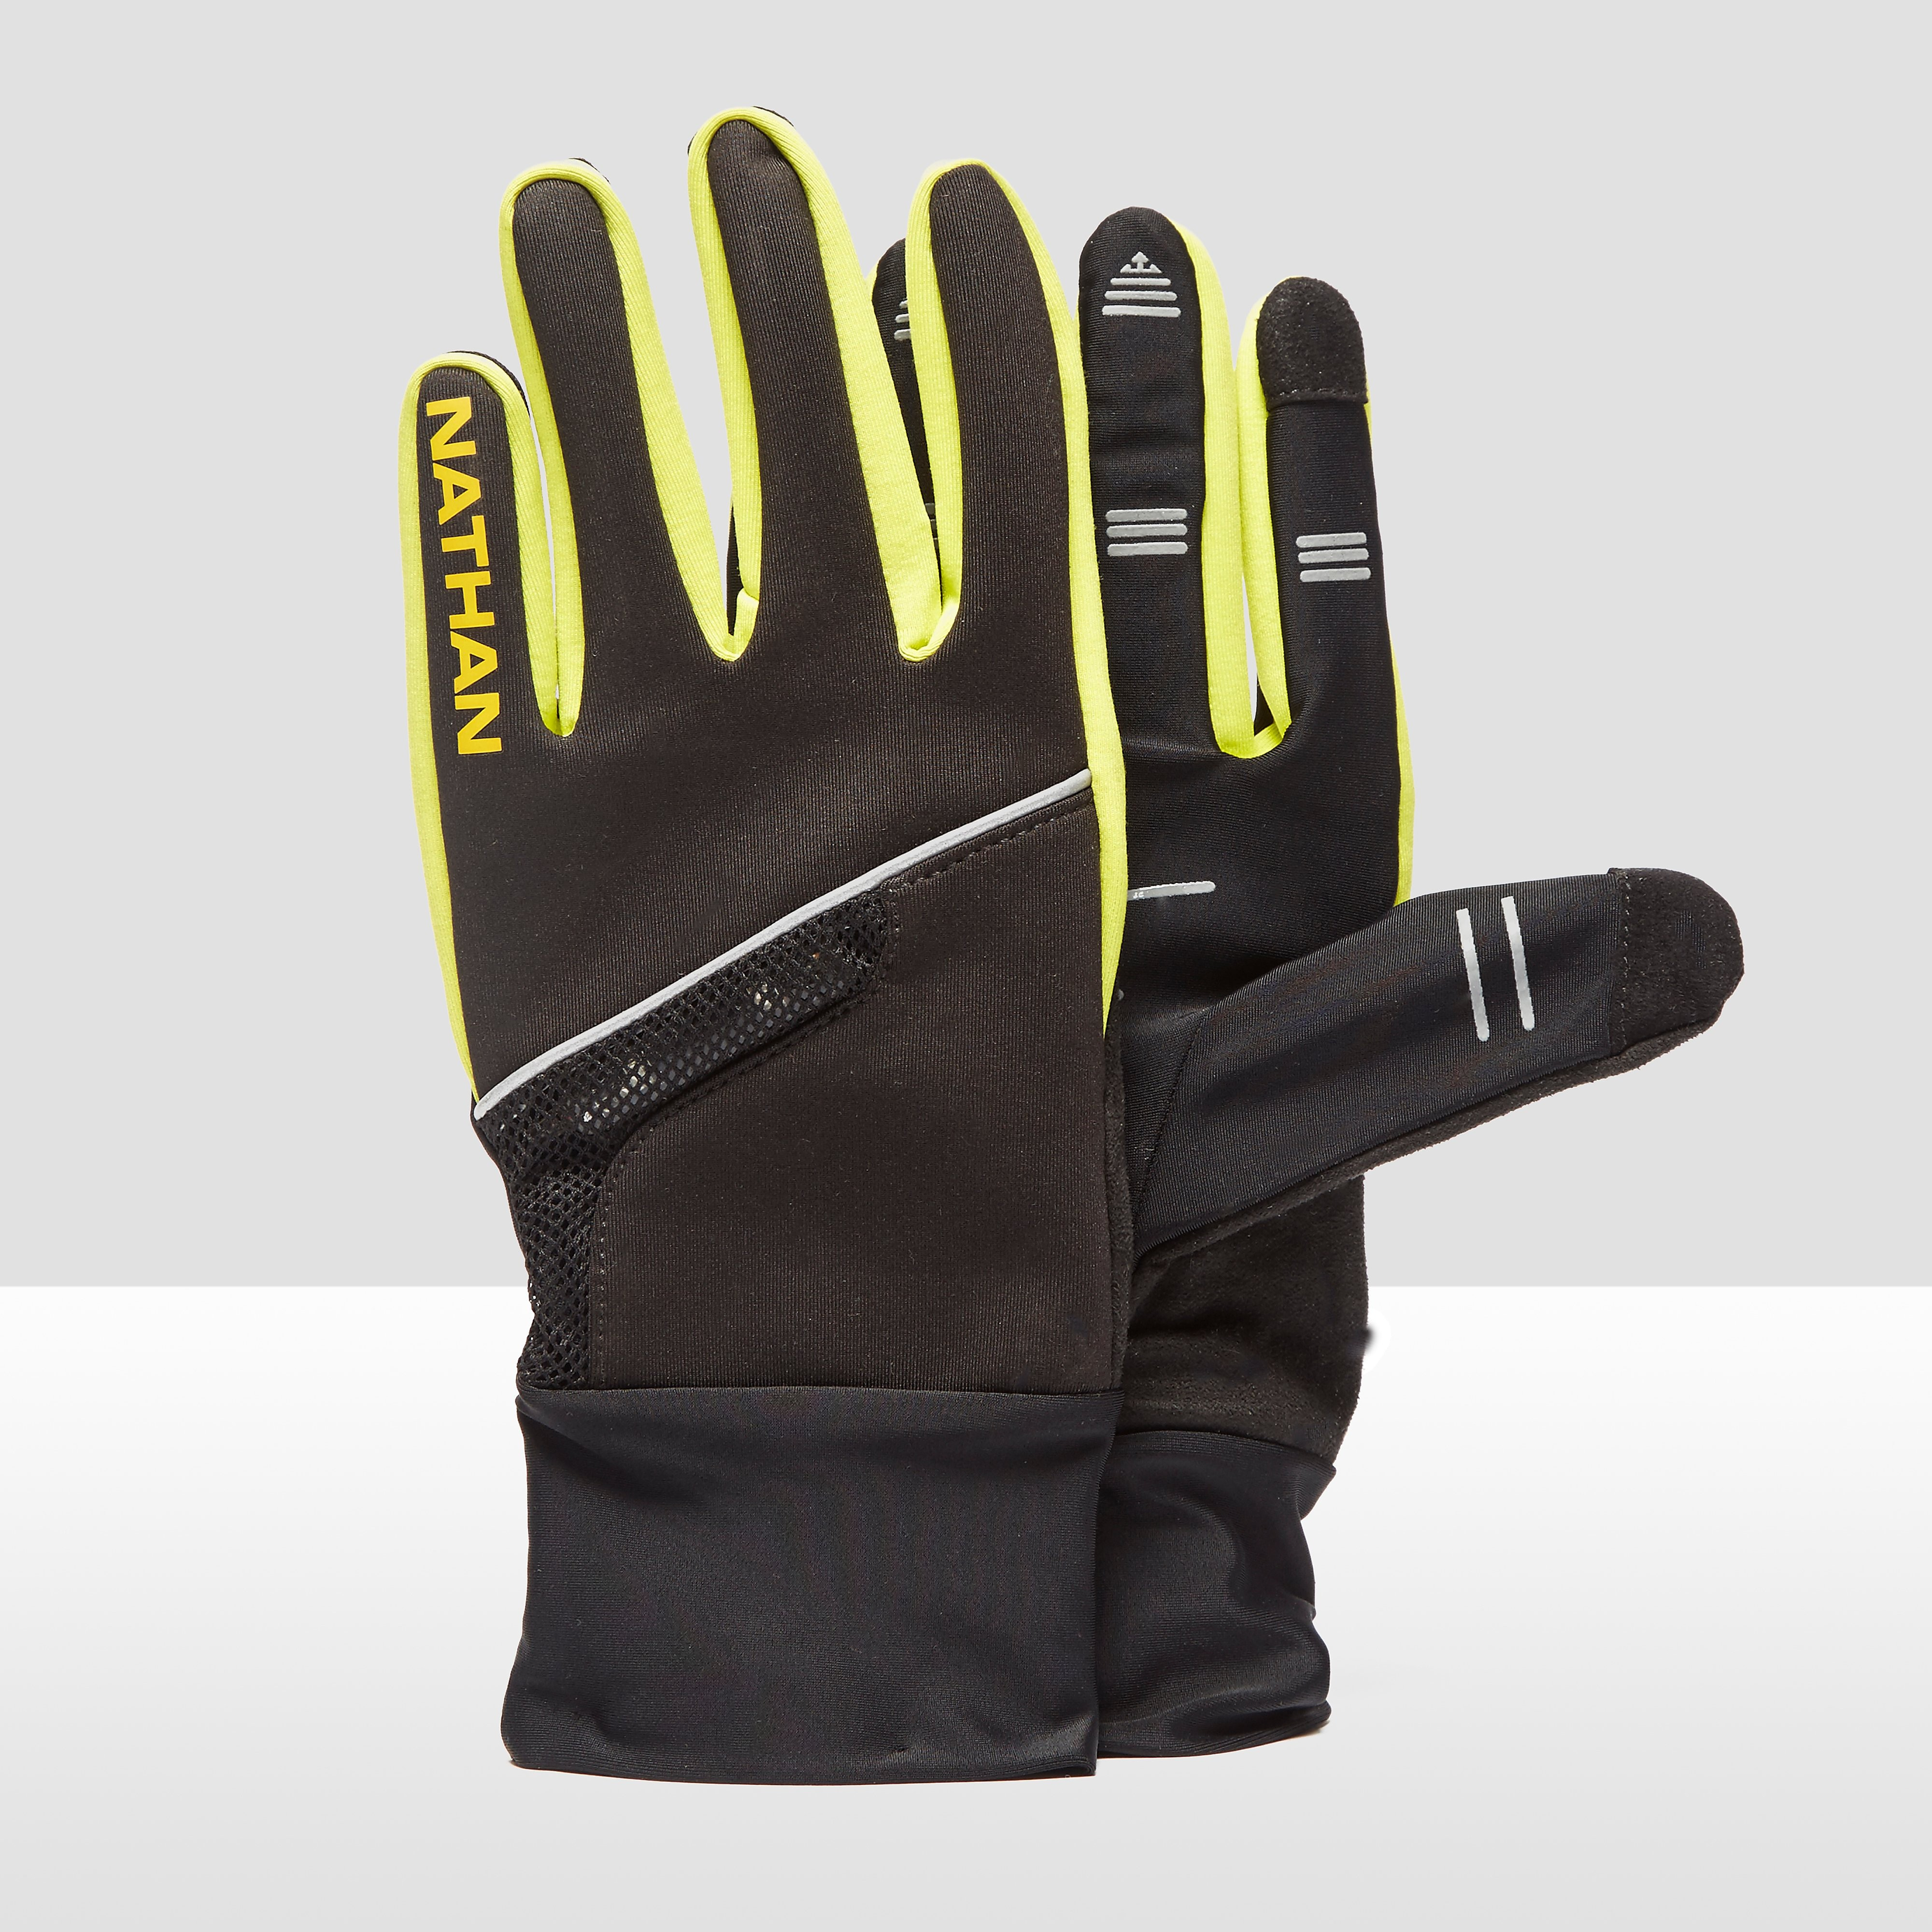 Nathan SpeedShift Gloves with LED